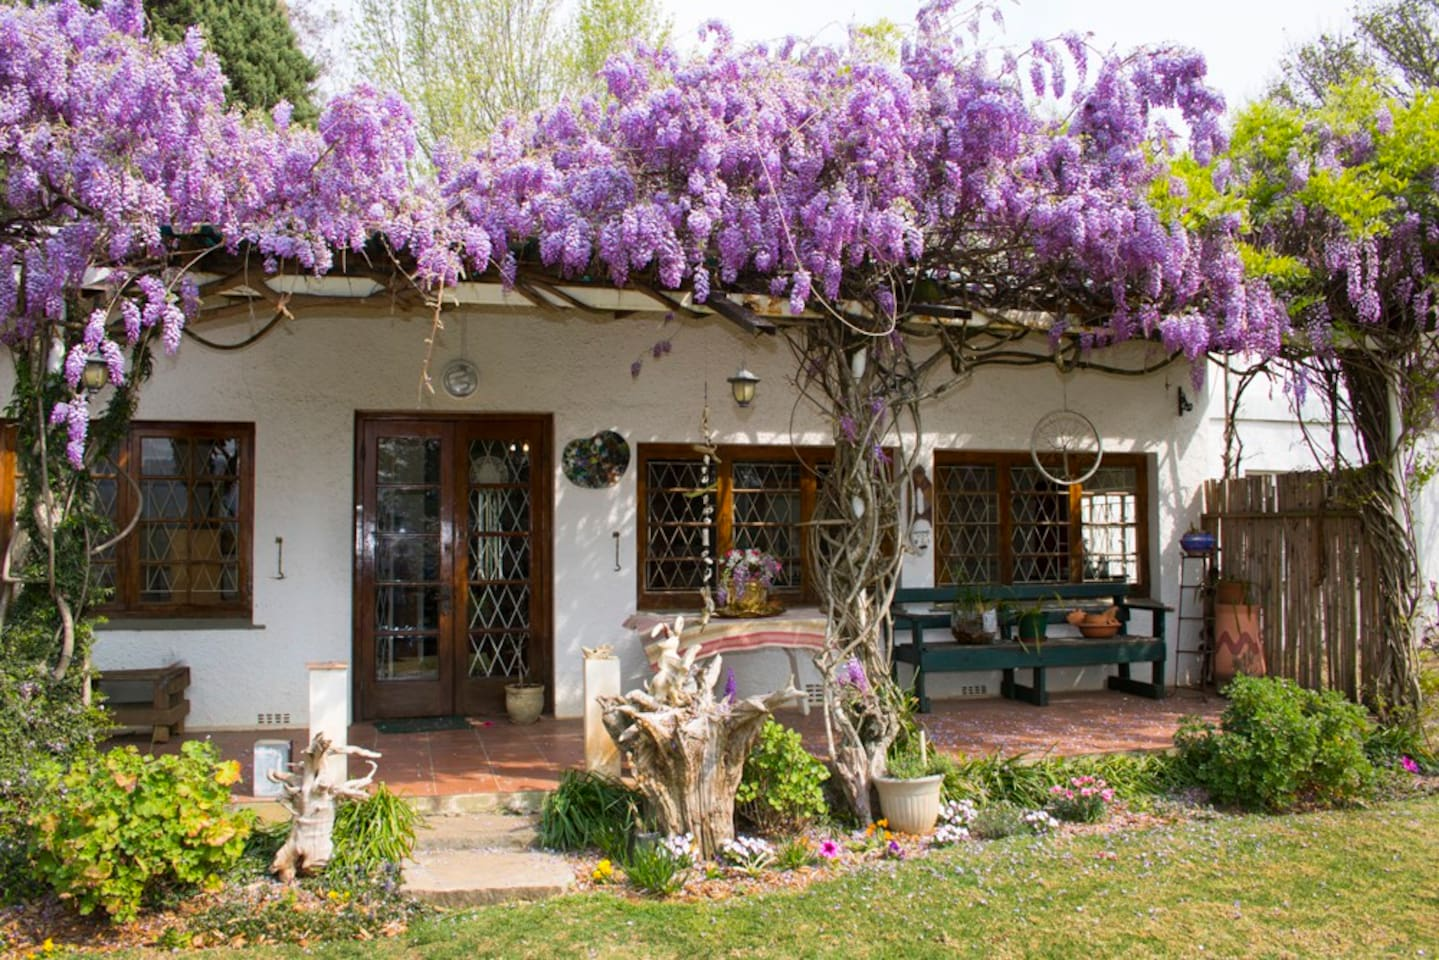 The Wisteria in full bloom